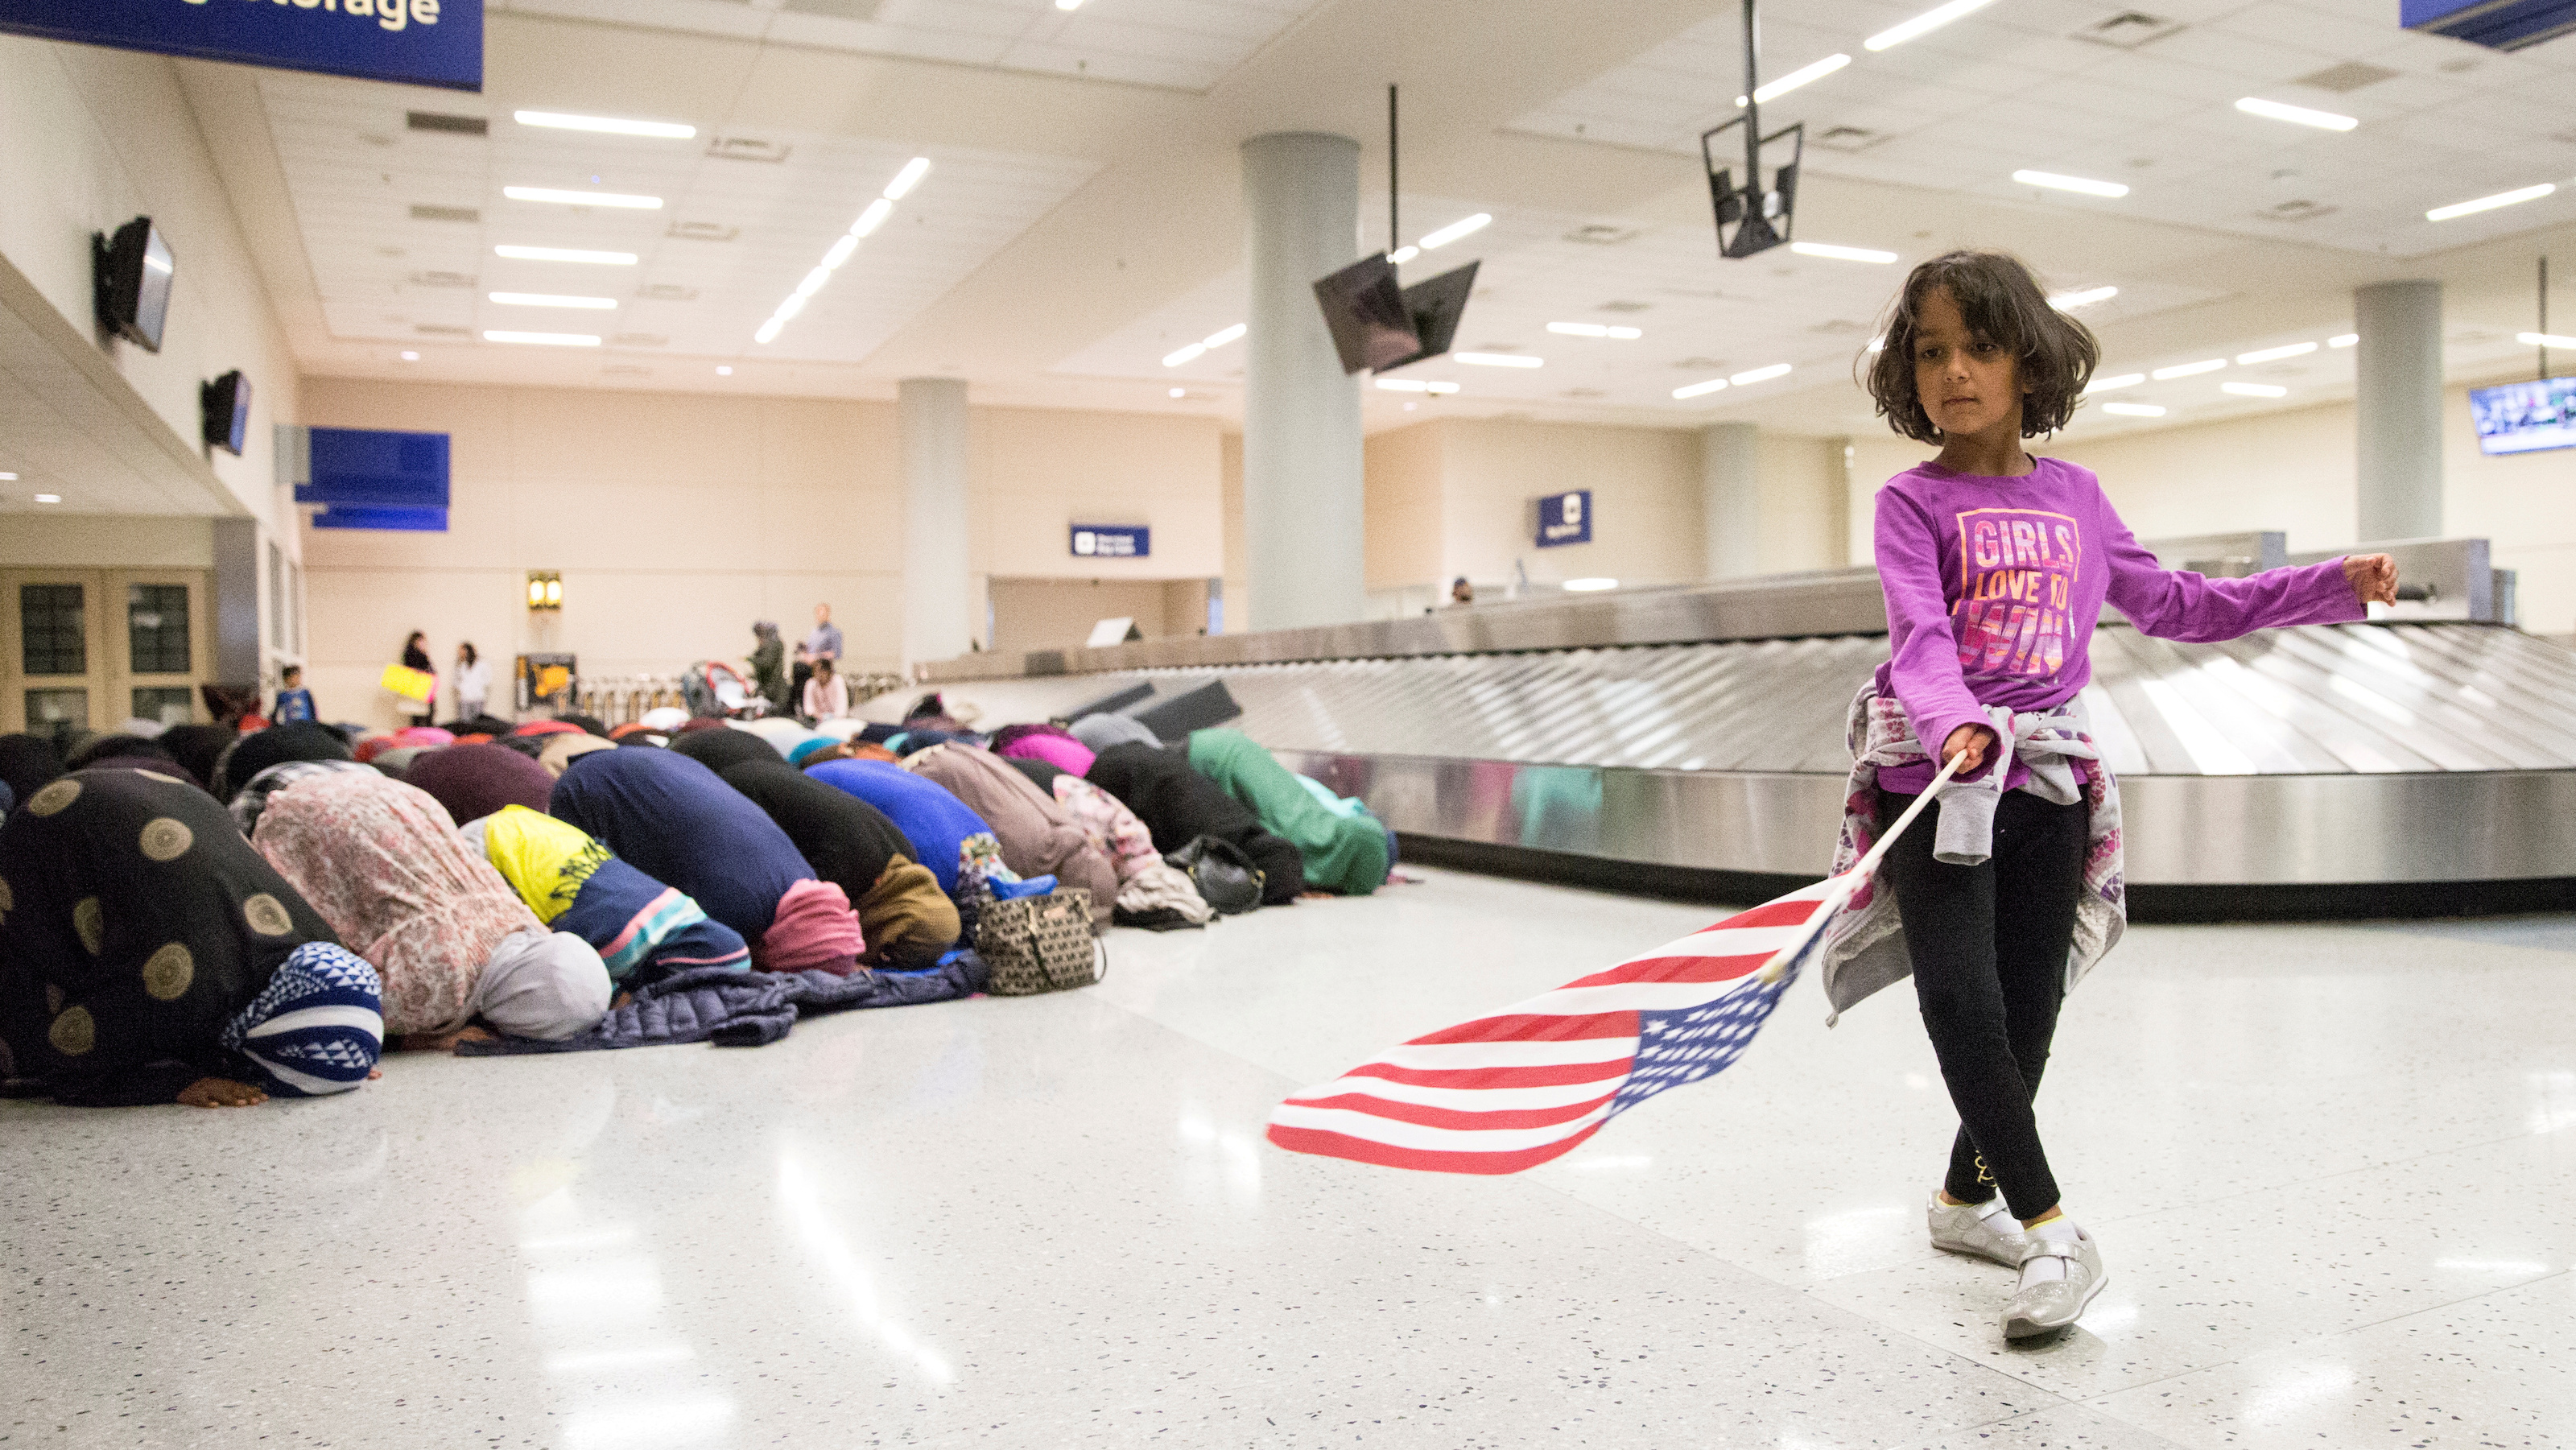 FILE PHOTO:A young girl dances with an American flag in baggage claim while women pray behind her during a protest against the travel ban imposed by U.S. President Donald Trump's executive order, at Dallas/Fort Worth International Airport in Dallas, Texas, U.S. January 29, 2017.  REUTERS/Laura Buckman/File Photo - RTSY3WY